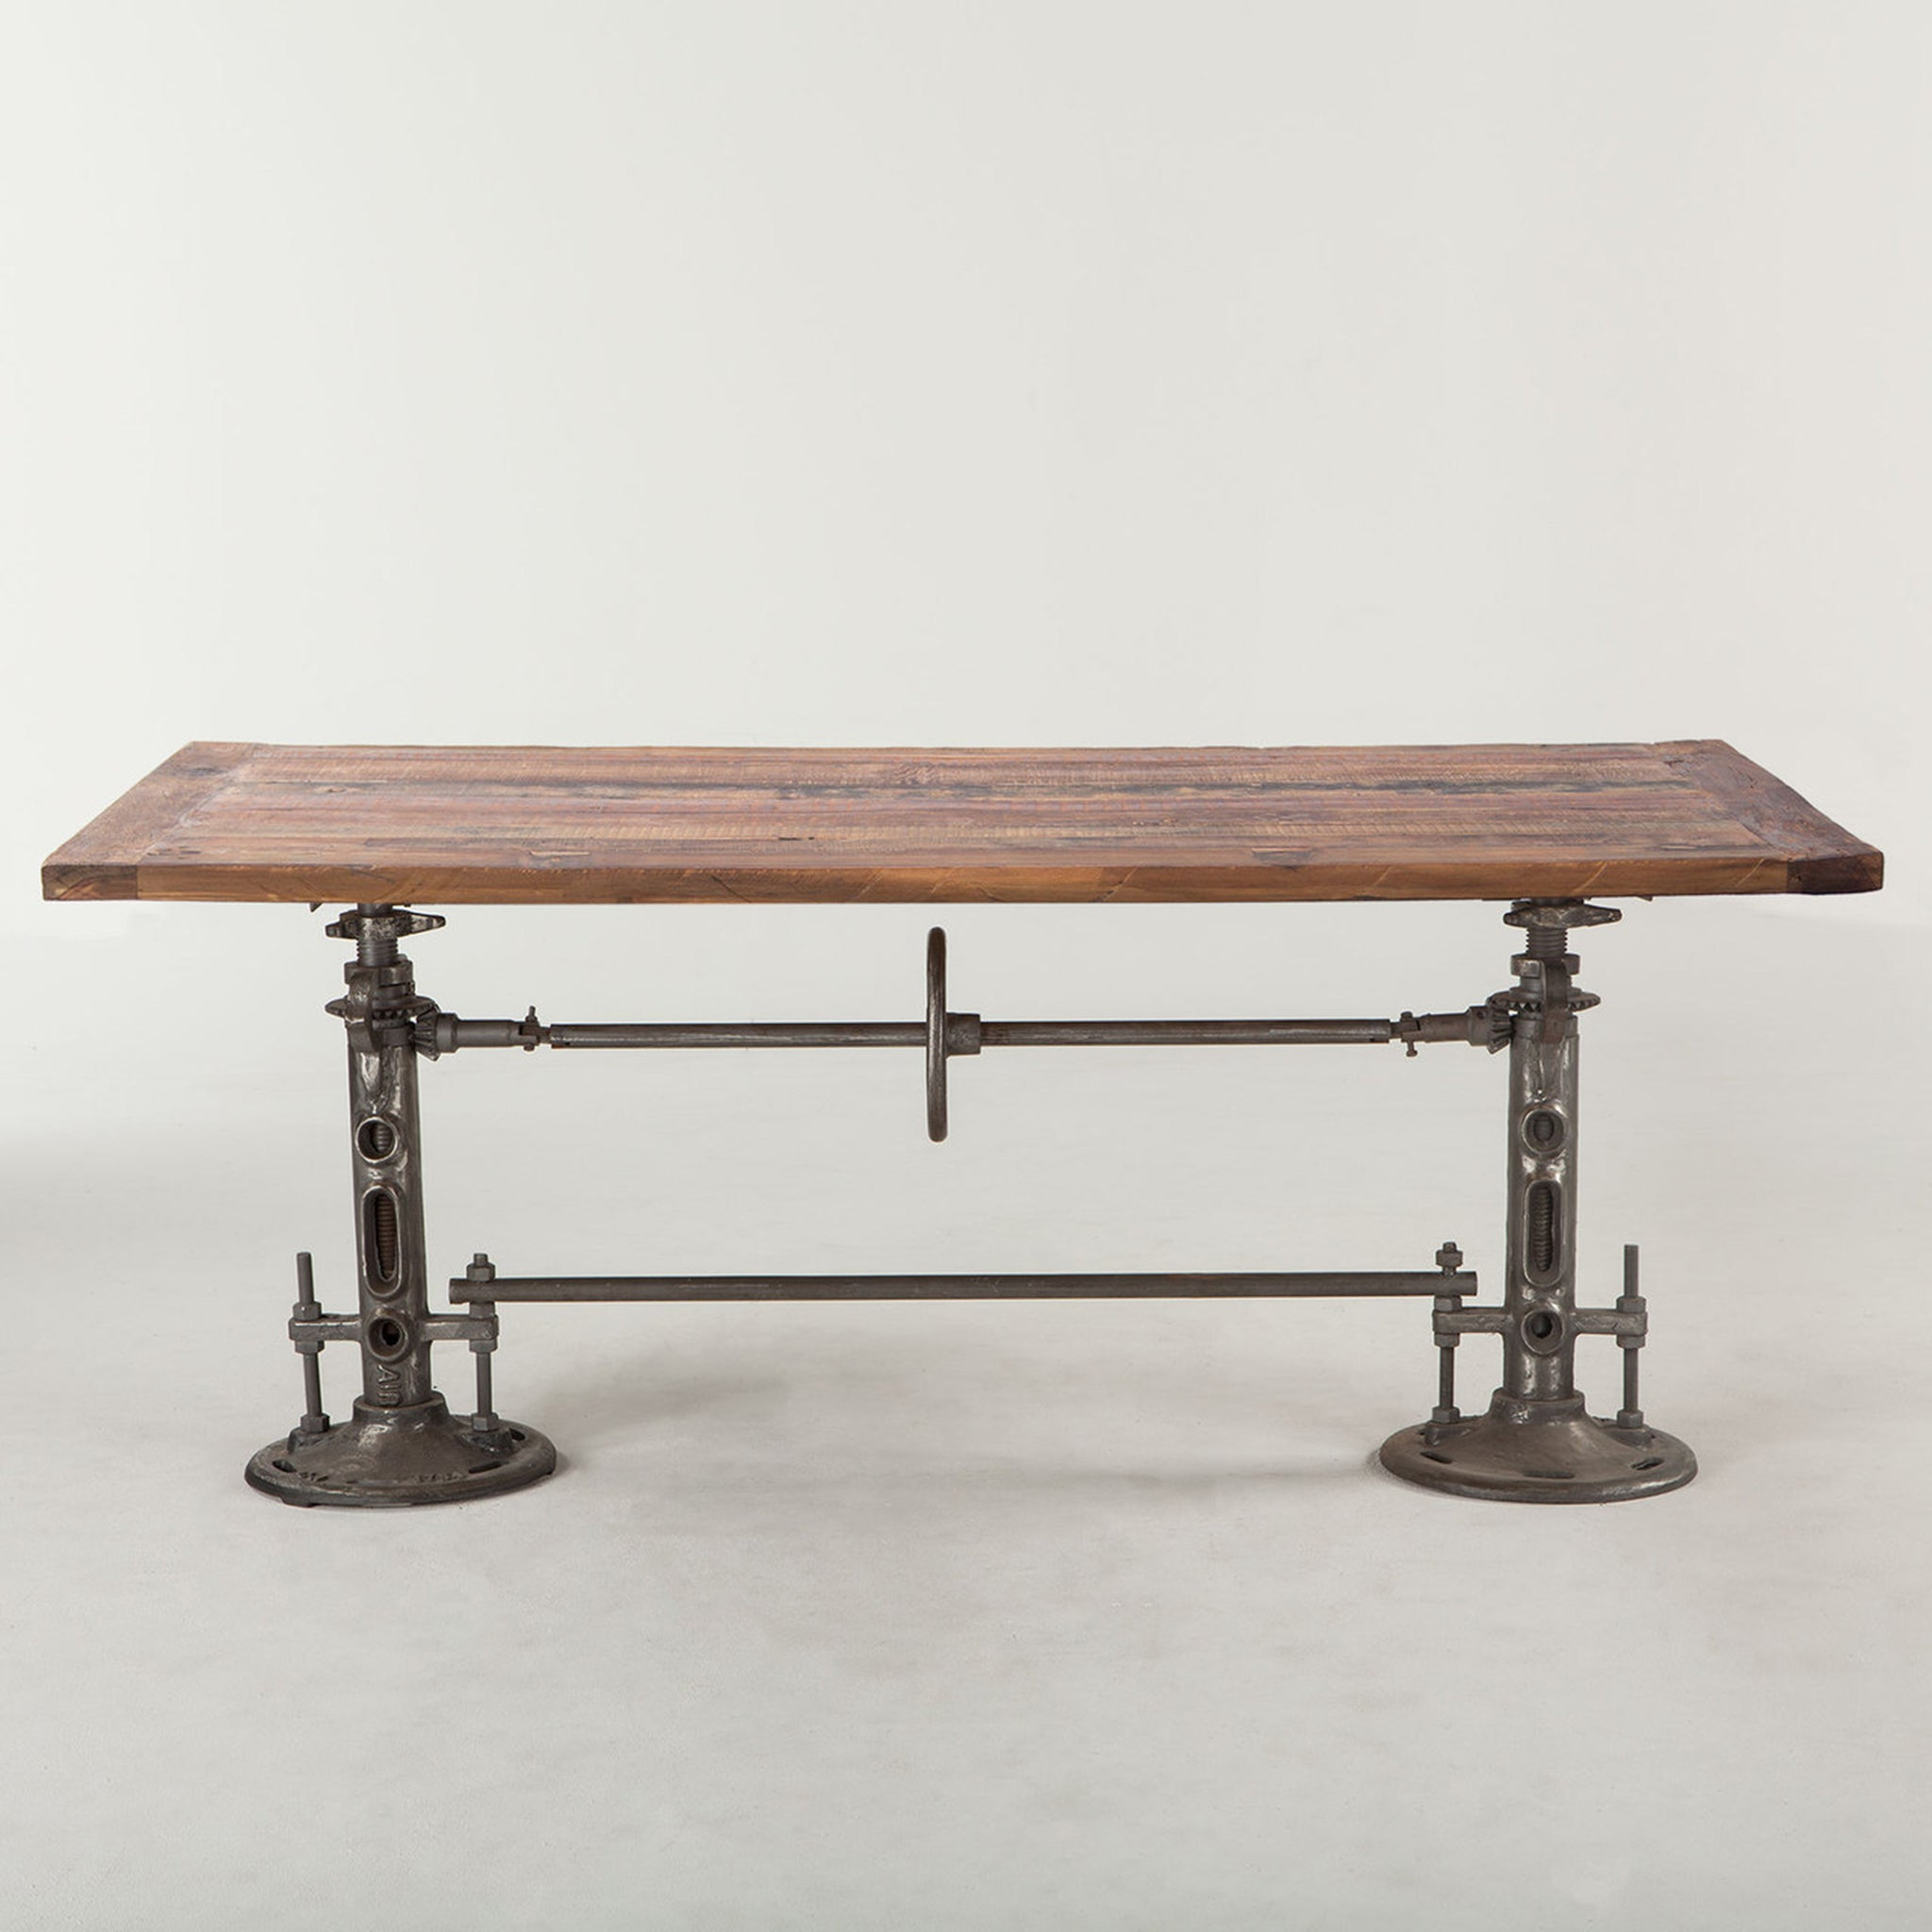 Industrial Loft Wood Dining Table 82""